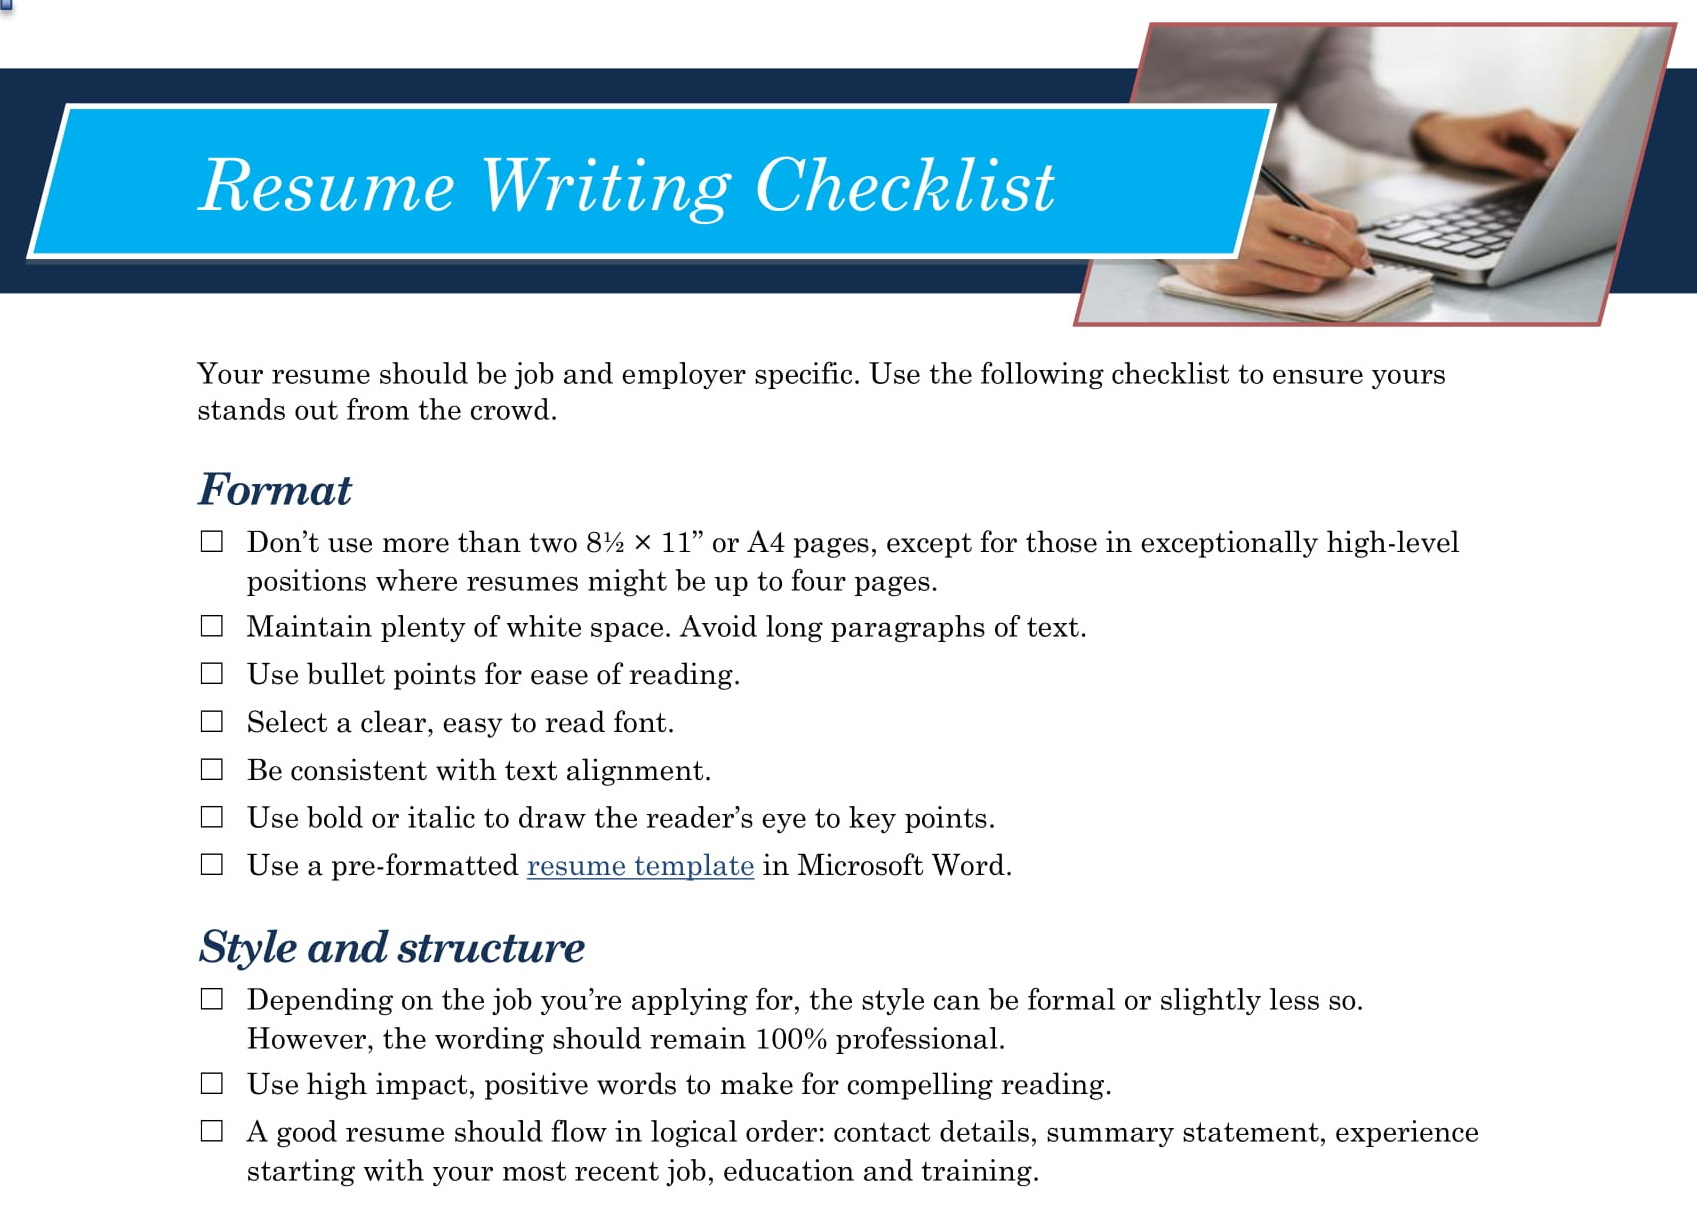 resume writing checklist learn content copy for impressive high school summary format Resume Checklist For Resume Writing